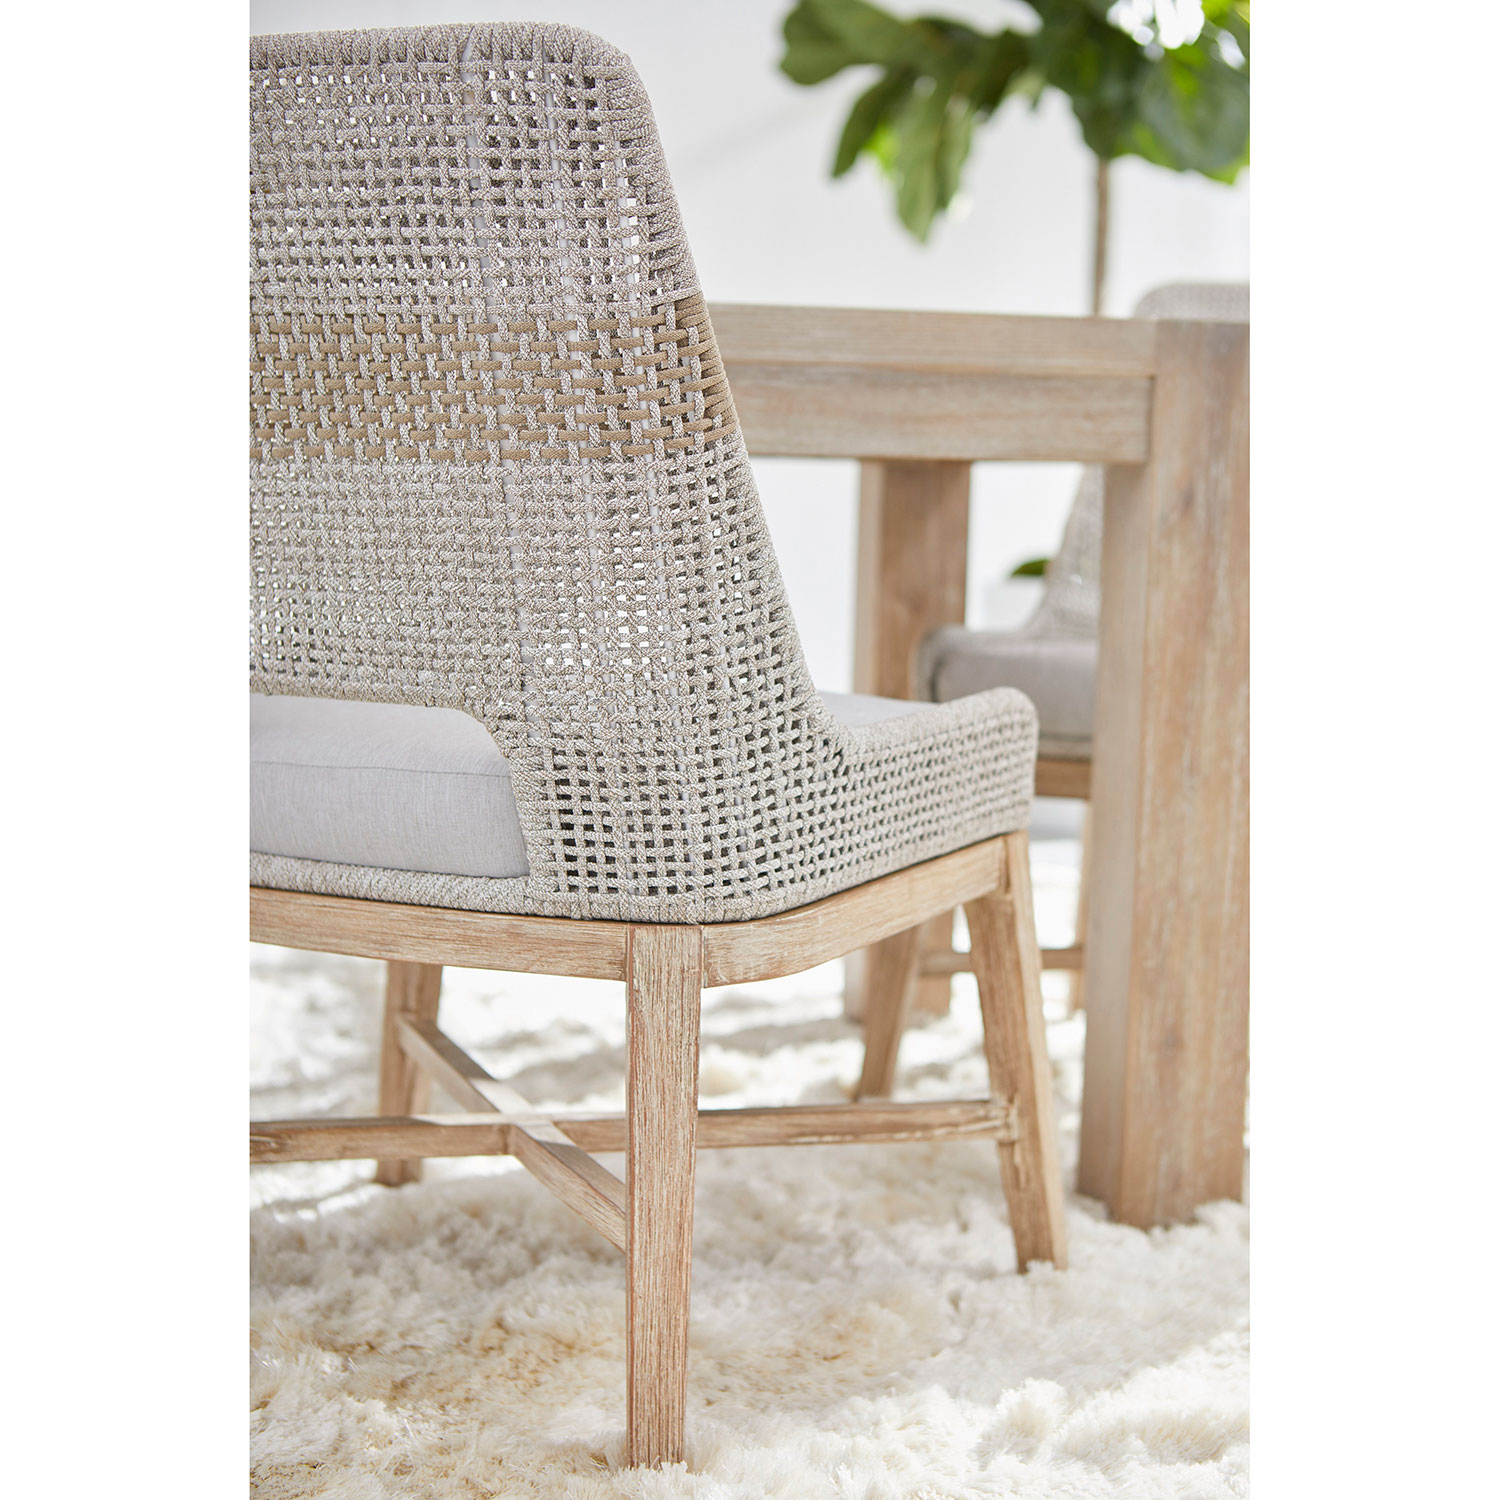 Theodore Modern Grey Woven Fixed Cushion Mahogany Dining Side Chair - Set of 2